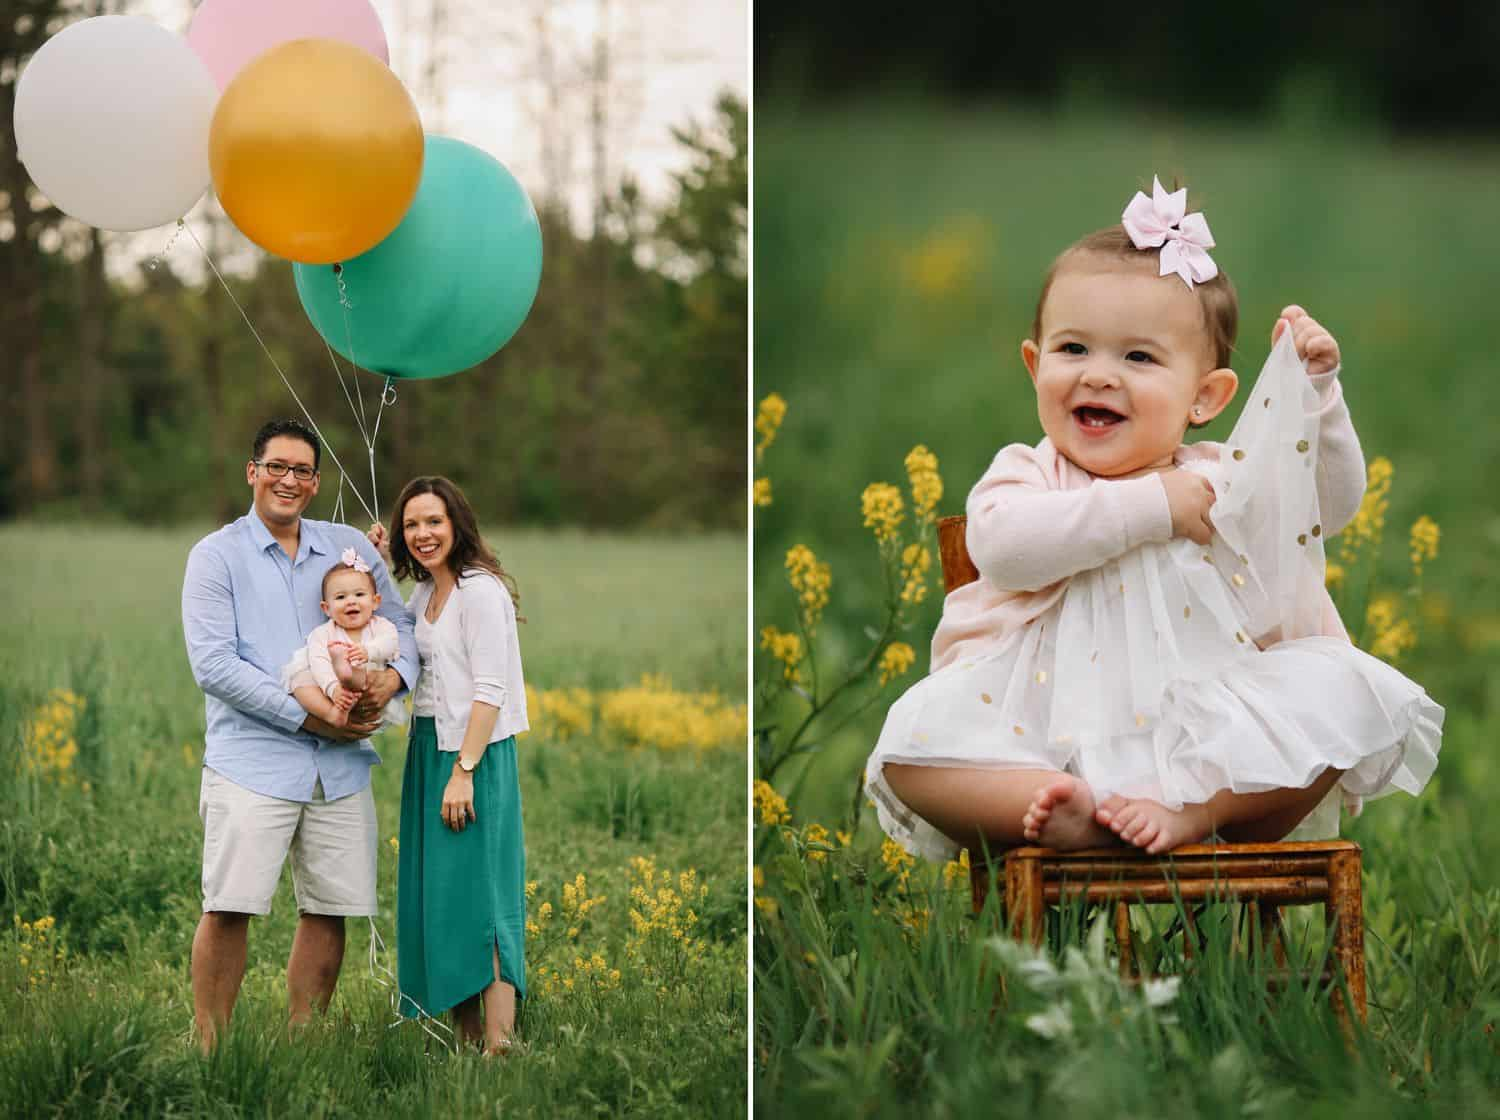 A family with a toddler daughter poses with a bunch of oversized balloons